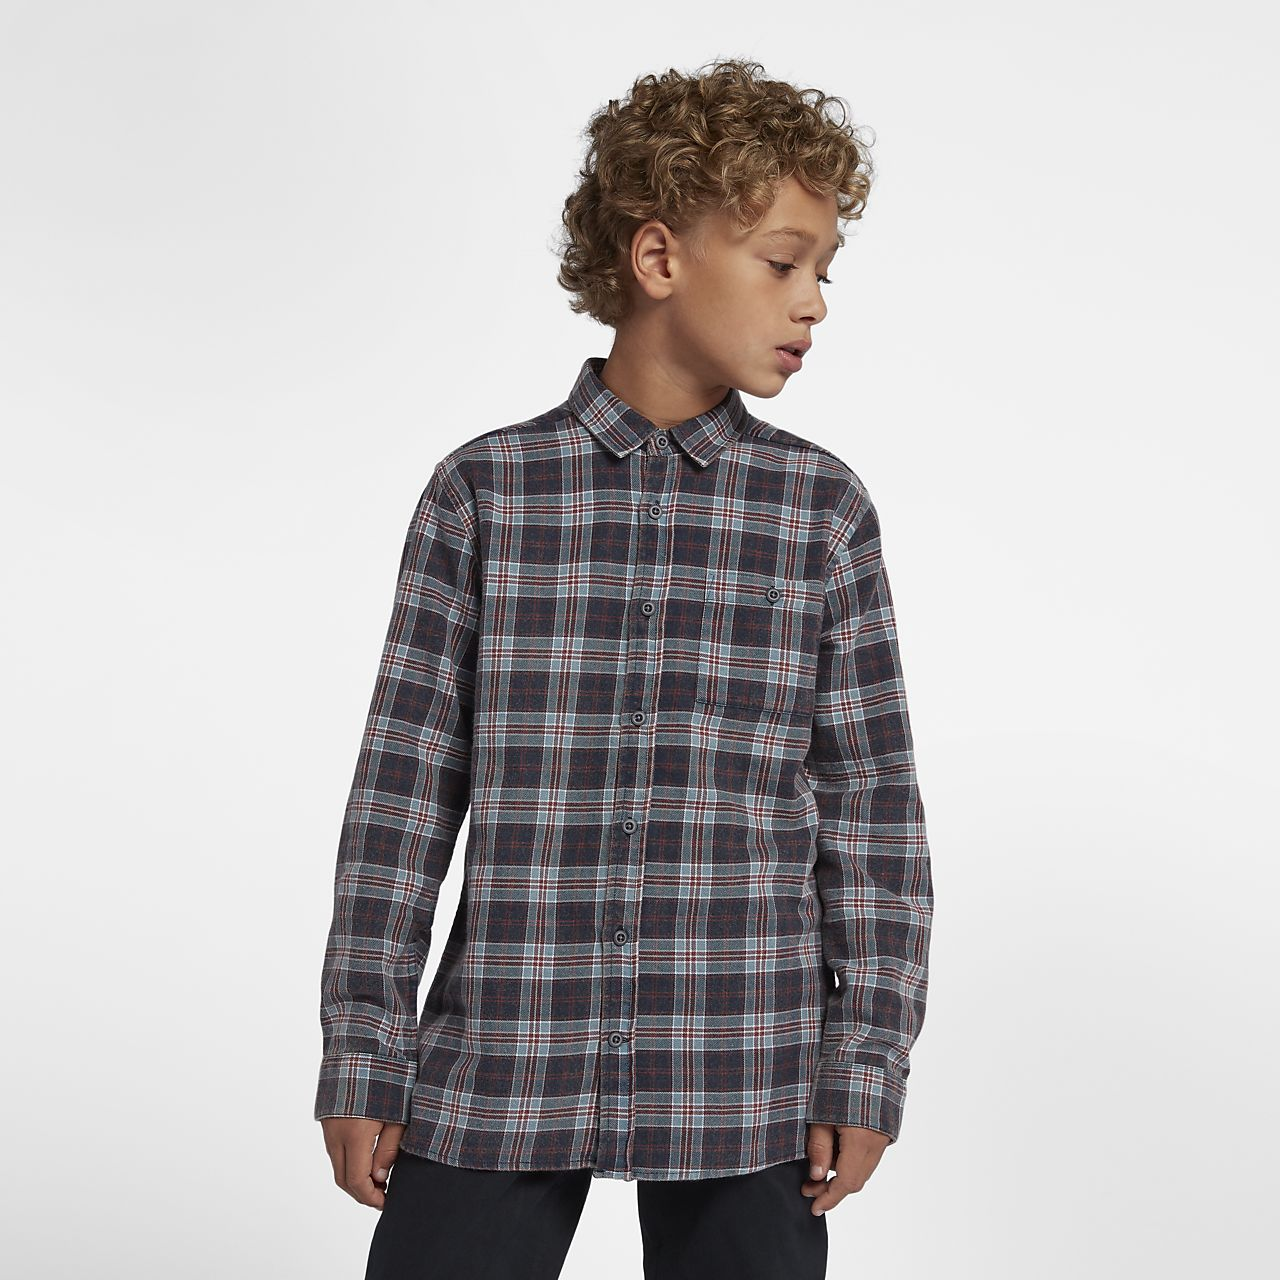 Hurley Ranger Boys' Woven Long-Sleeve Top